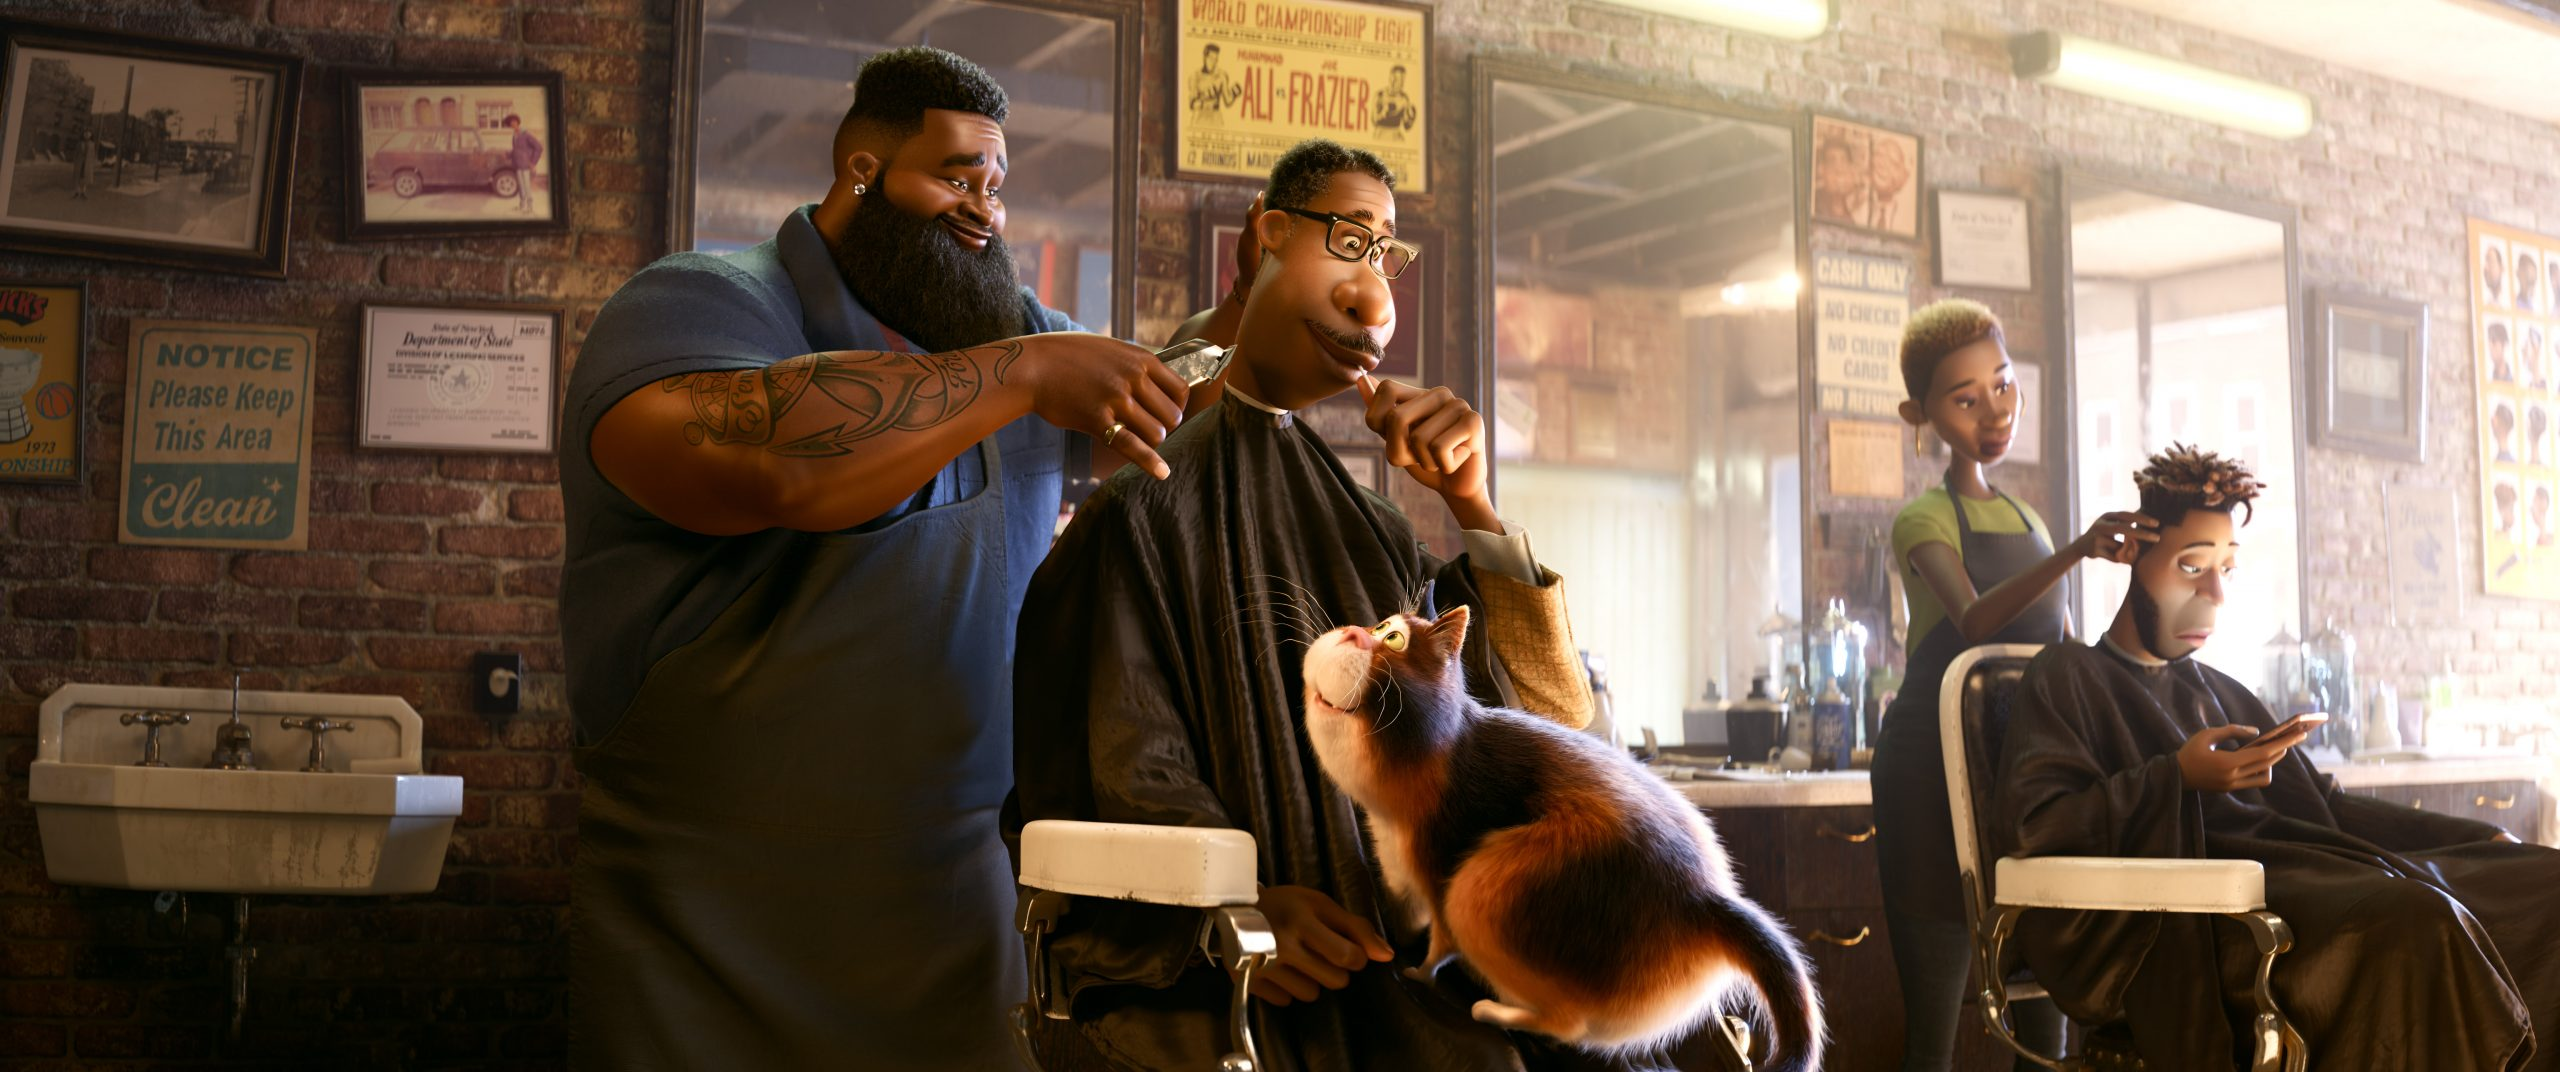 The barbershop scene from Soul. Image courtesy Disney/Pixar.